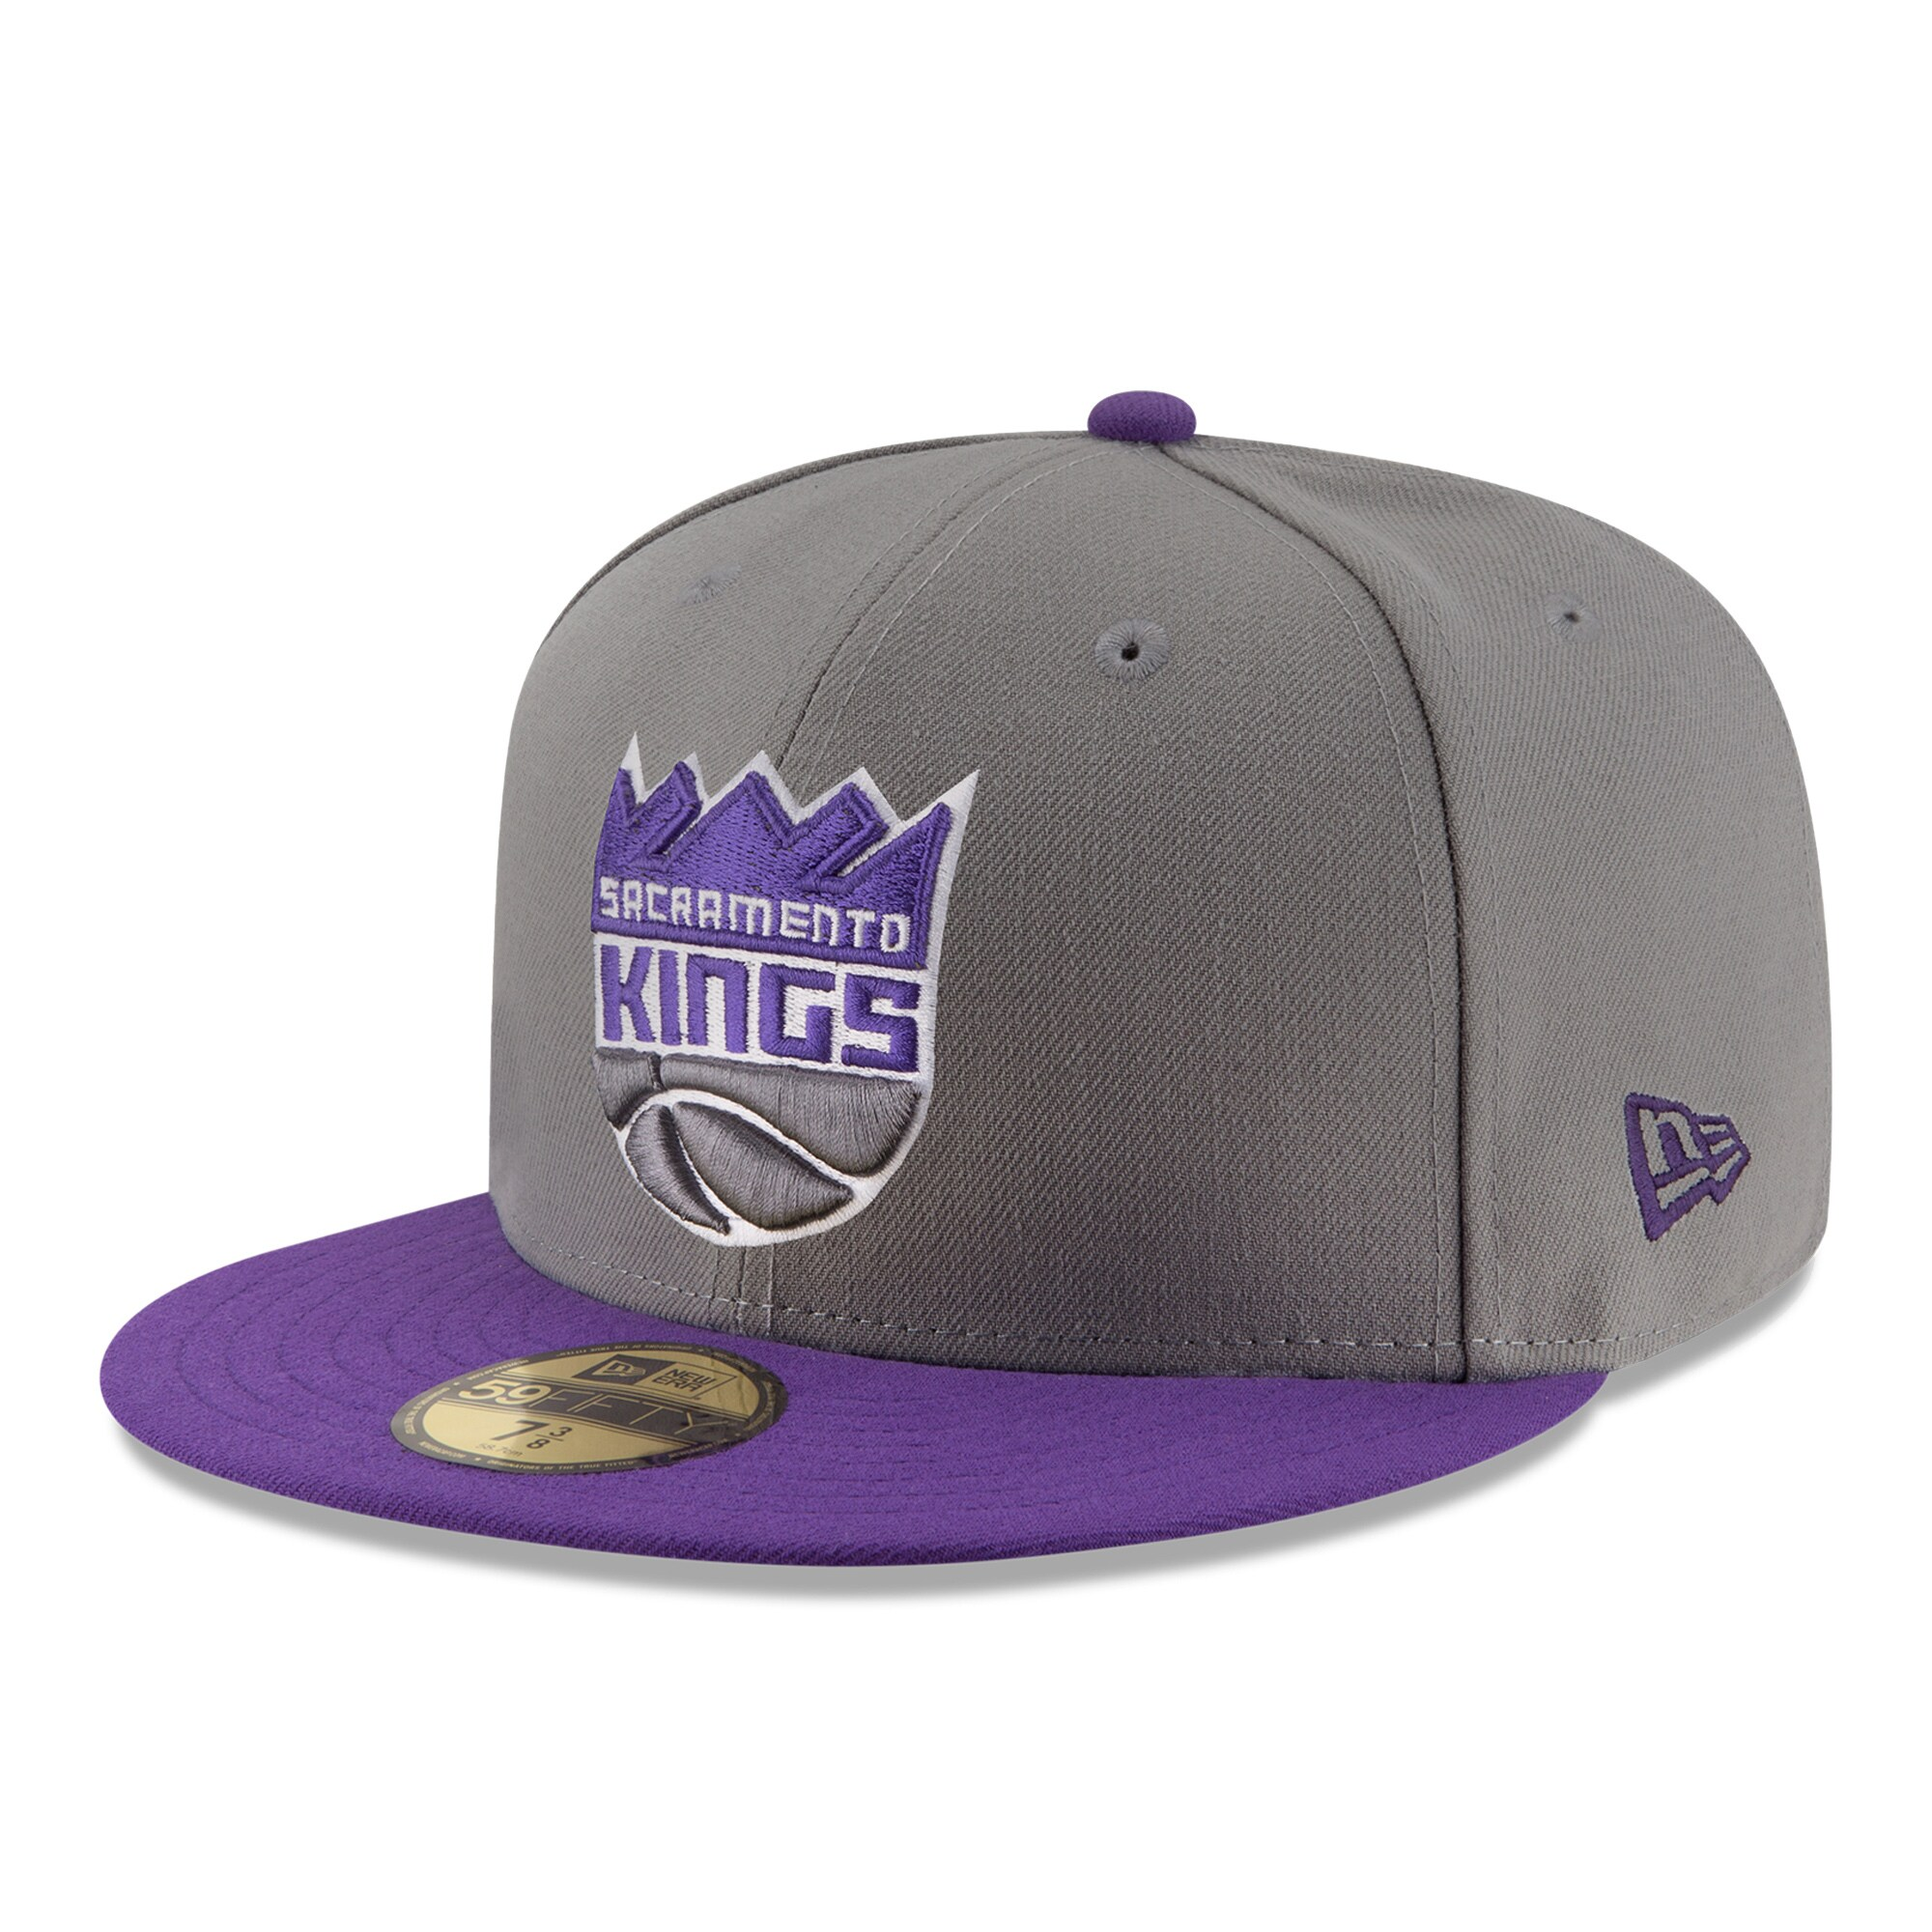 Sacramento Kings New Era New Logo 59FIFTY Fitted Hat - Gray